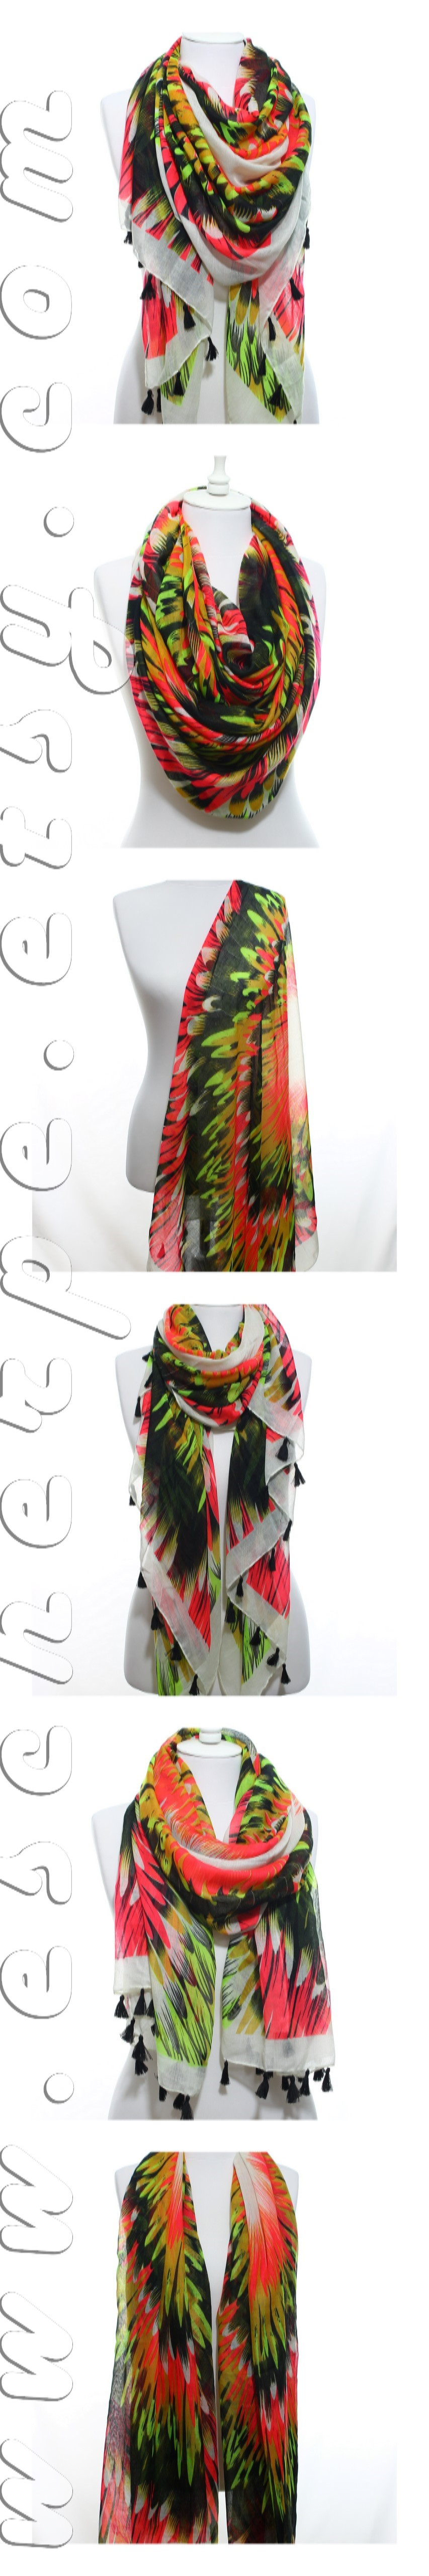 Neon Wings Scarf, So Soft Lightweight Spring Summer Scarf Women's Fashion Accessories Beach Wrap Mother's Day Easter Gift For Girlfriends #escherpe #scarves #scarf #shawl #shawls #wrap #wraps #tartan #plaid #check #summer #trend #spring #women #fashion #accessories #holidays #holiday #christmas #gift #gifts #outfit #accessorize #style #stylish #love #cobalt #me #cute #valentines #nails #floral #beauty #beautiful #paisley #beige #pretty #chevron #pink #yellow #wine #green #shoes #zigzag…